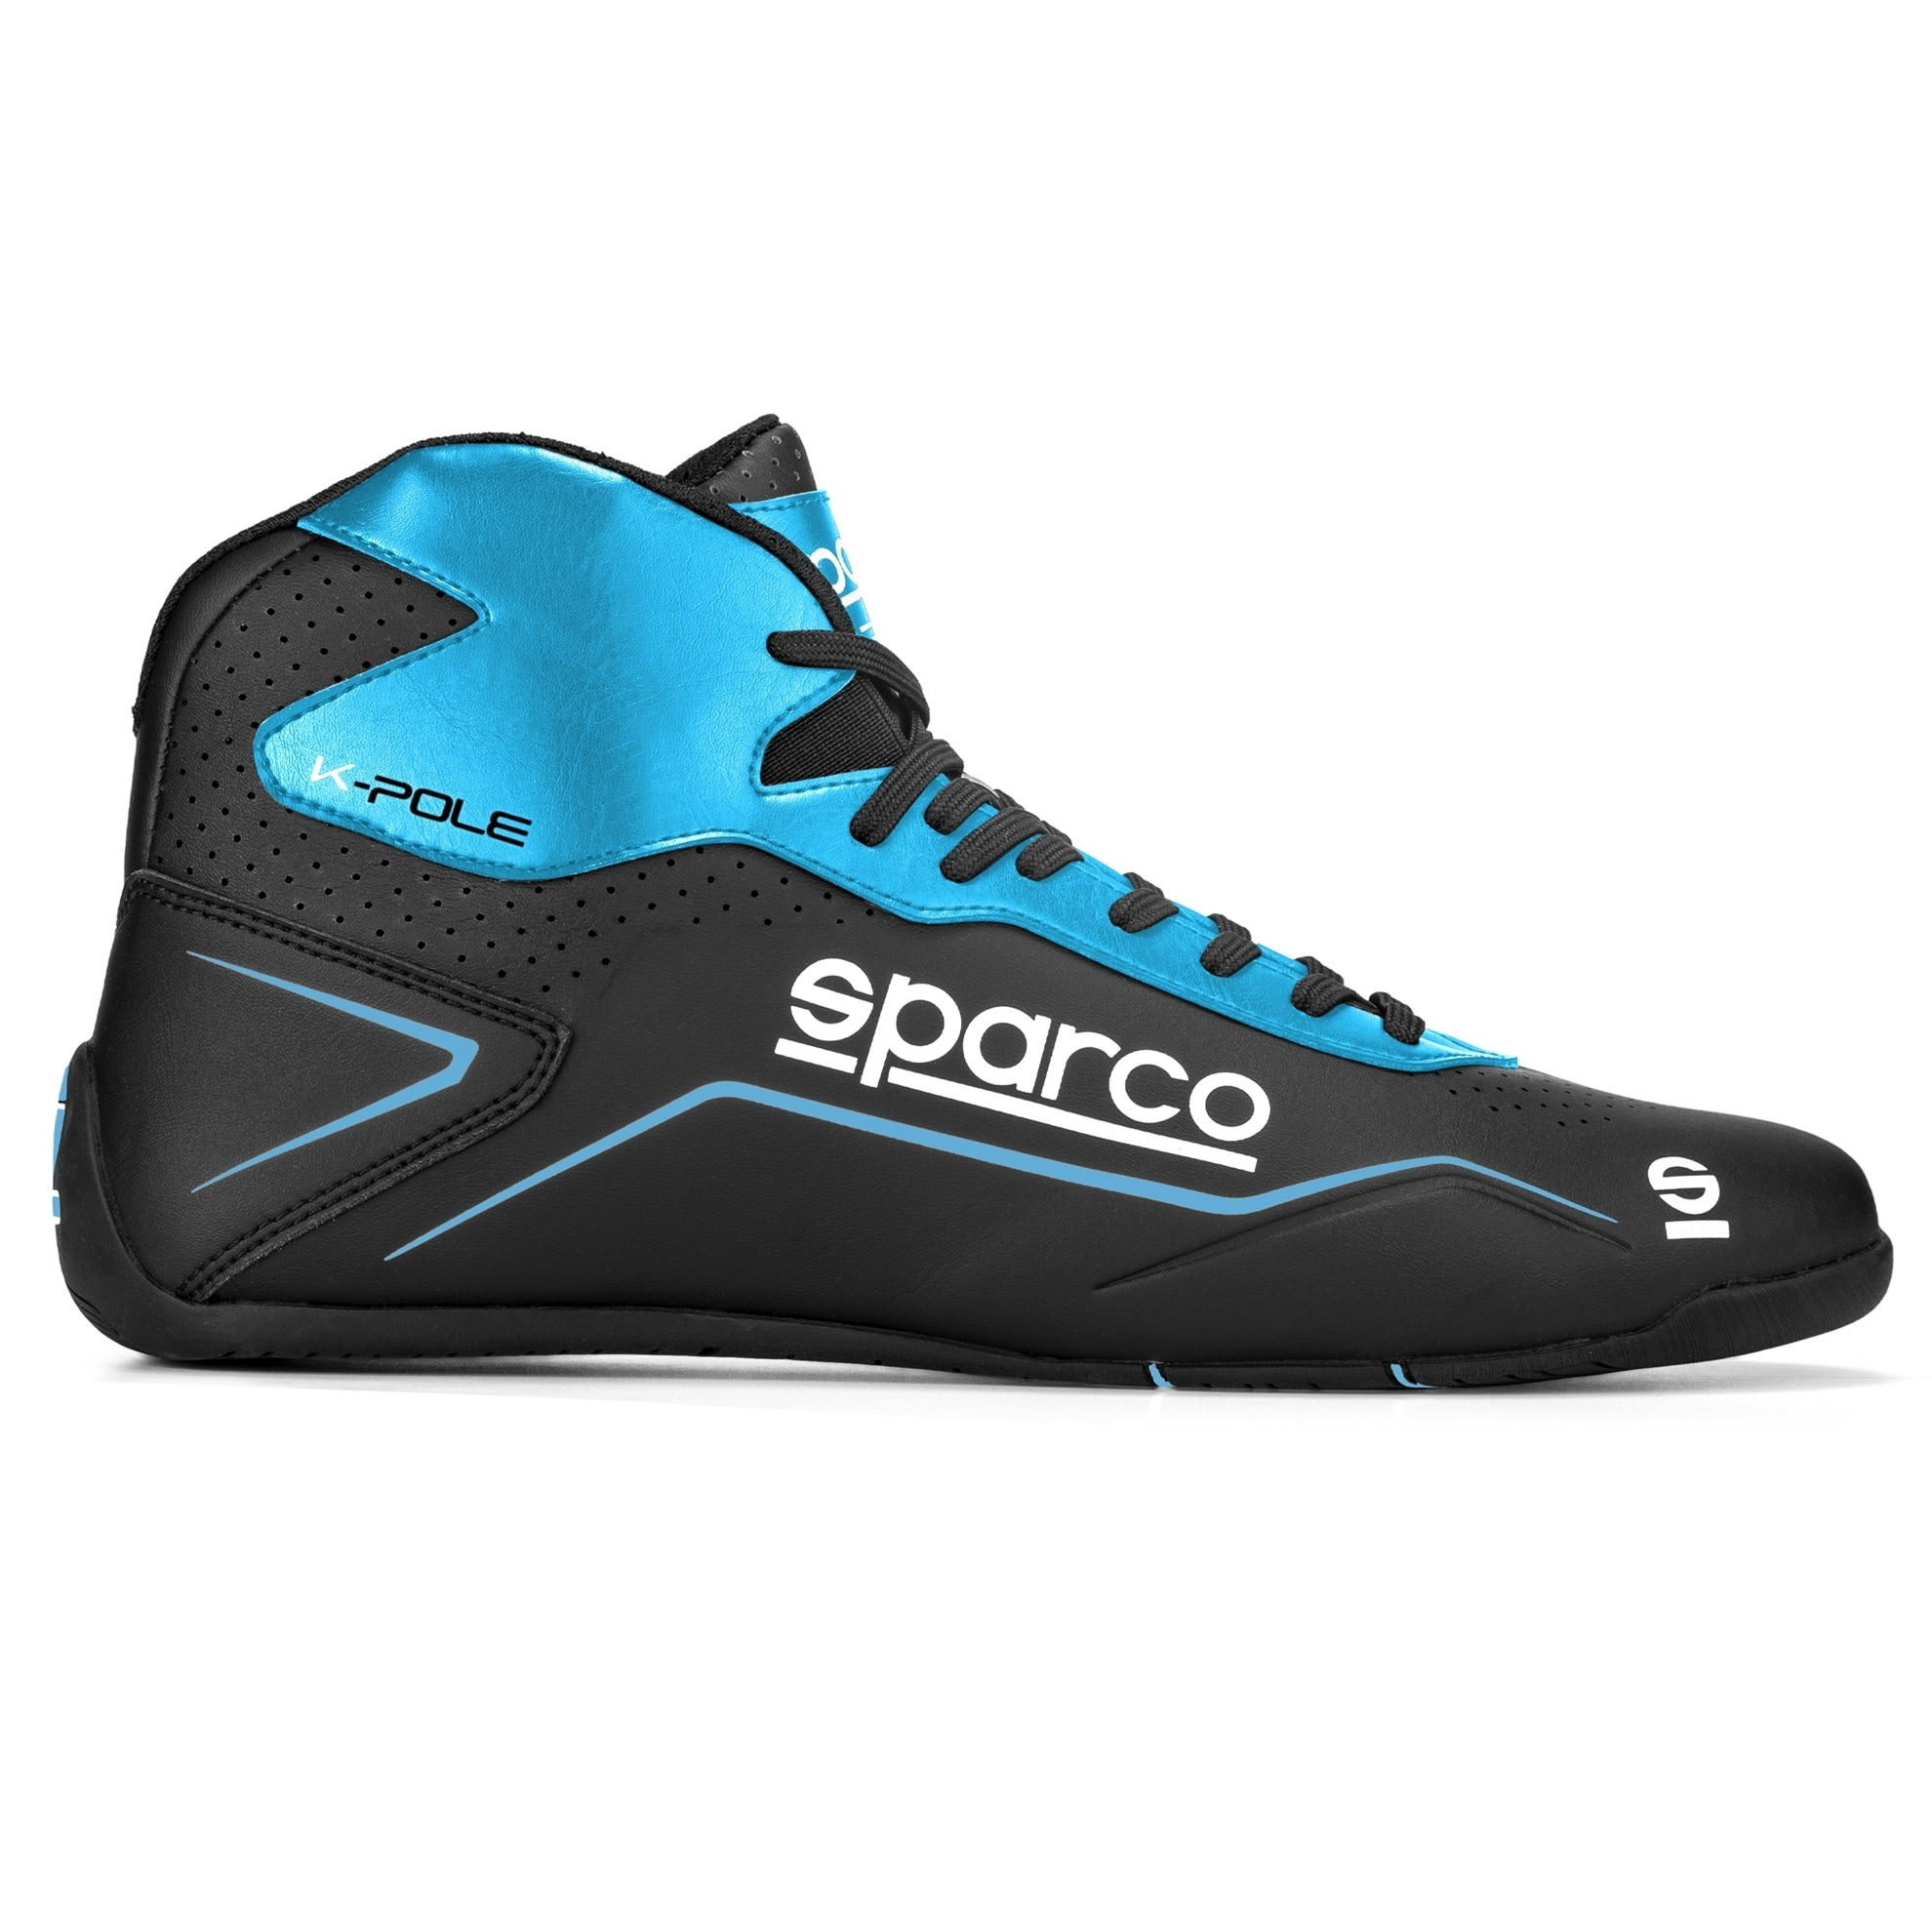 Sparco K-Pole Shoes - Saferacer